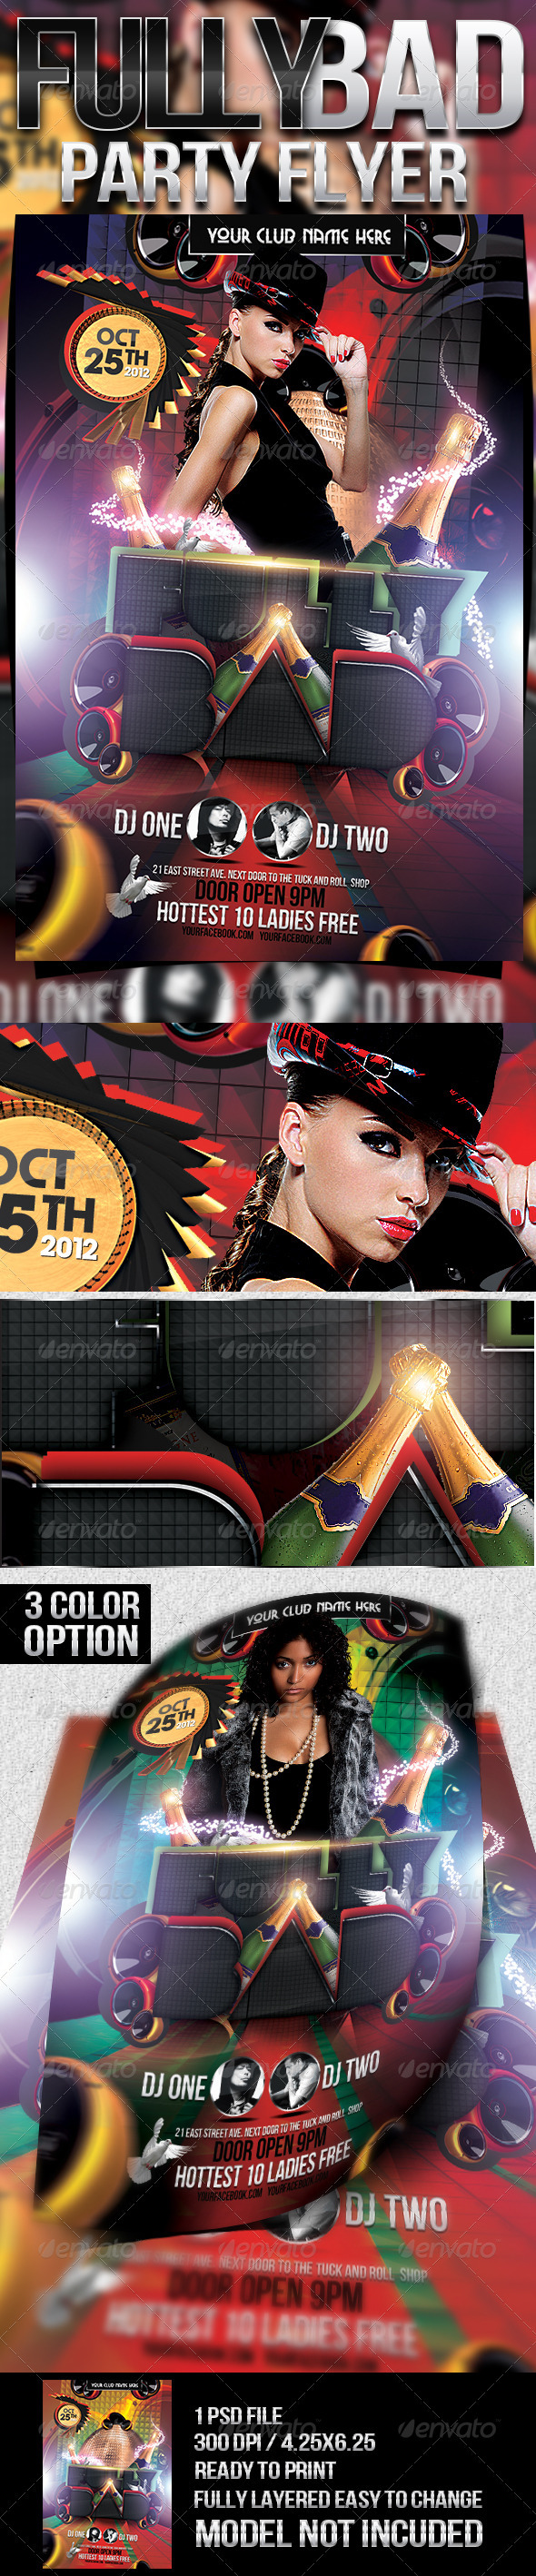 Fully Bad Party Flyer - Clubs & Parties Events